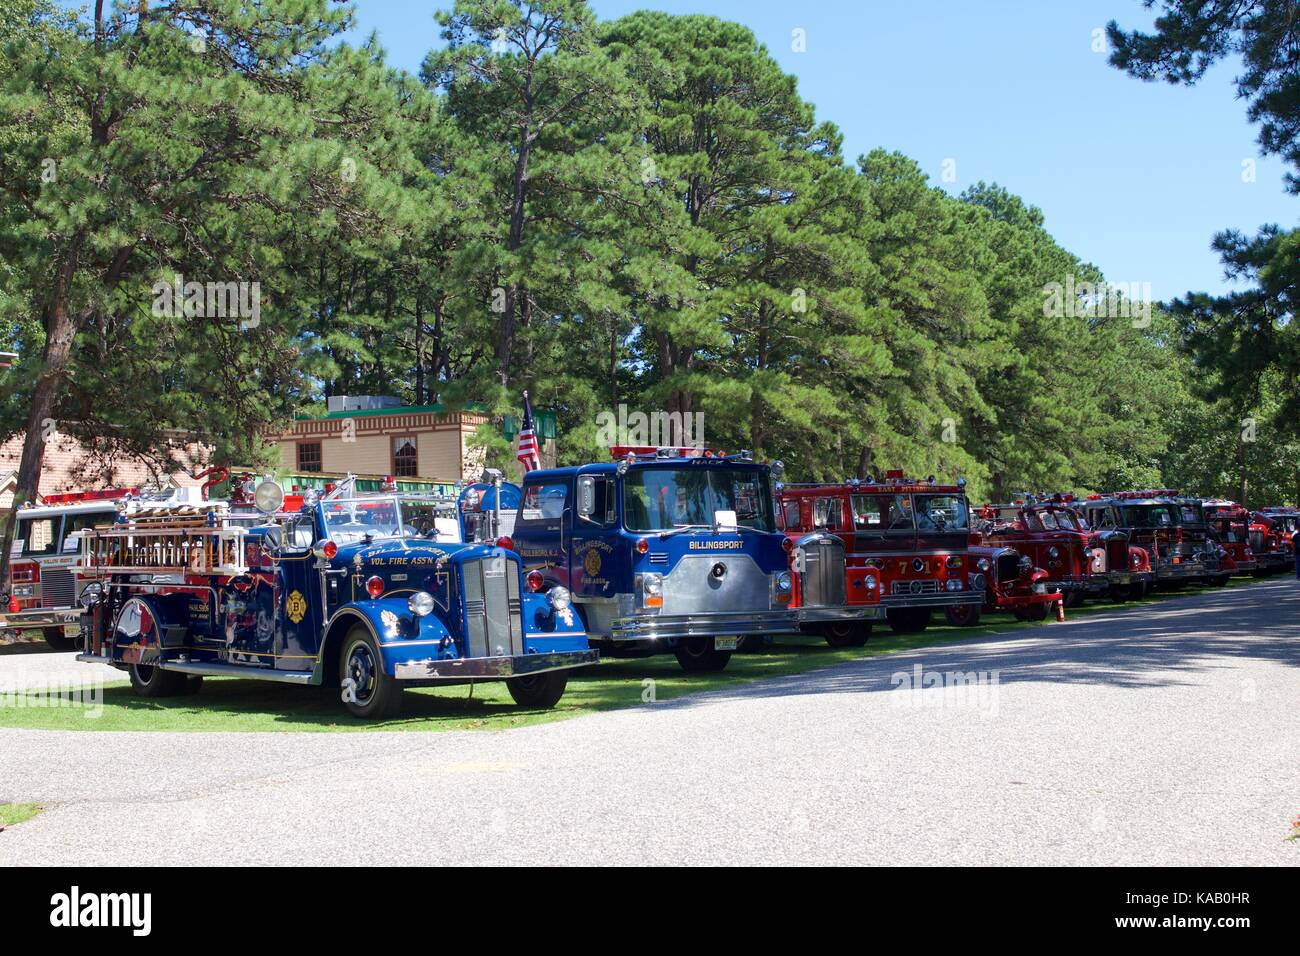 Vintage fire engines on display at the 37th Annual Fire Apparatus Show and Muster at WheatonArts, in Millville, - Stock Image